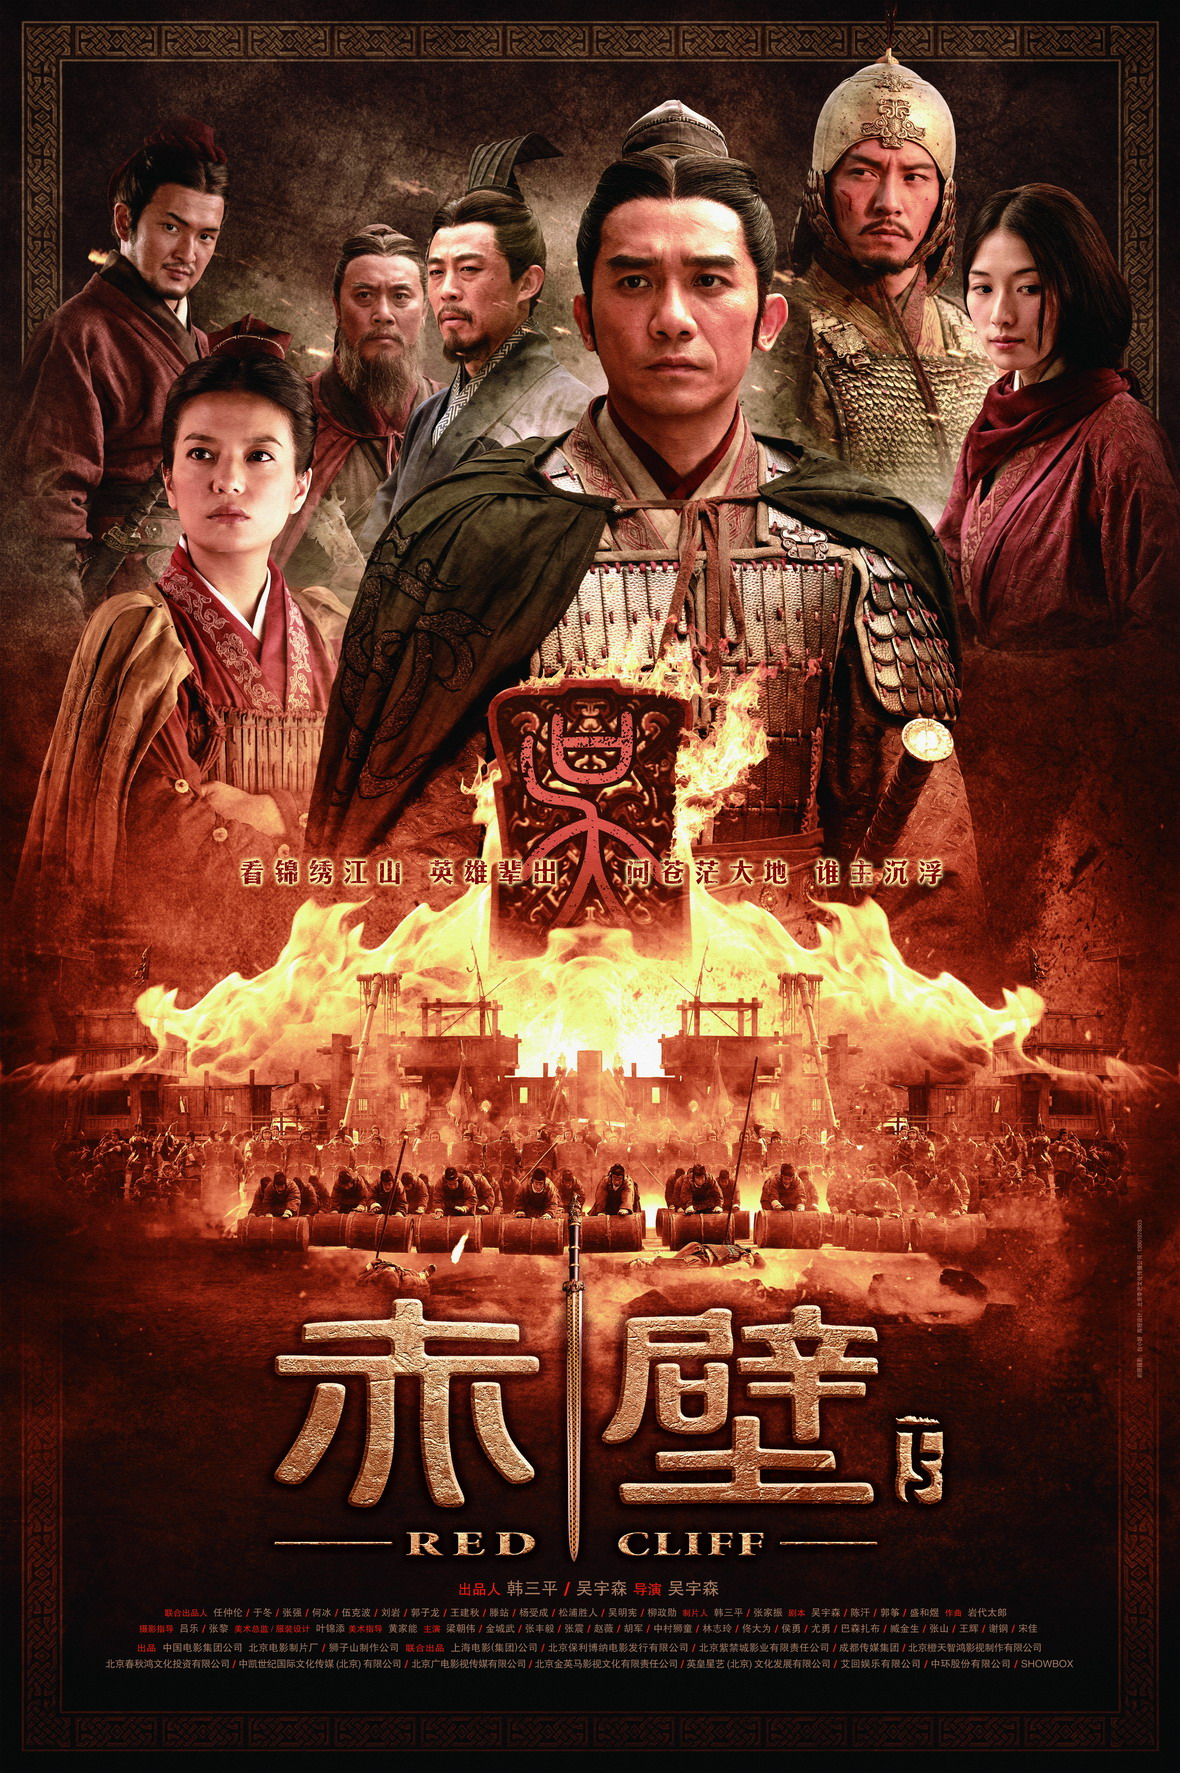 red cliff movie Watch full length red cliff movie for free online streaming free films to watch online including movie trailers and movie clips red cliff is a chinese ep.